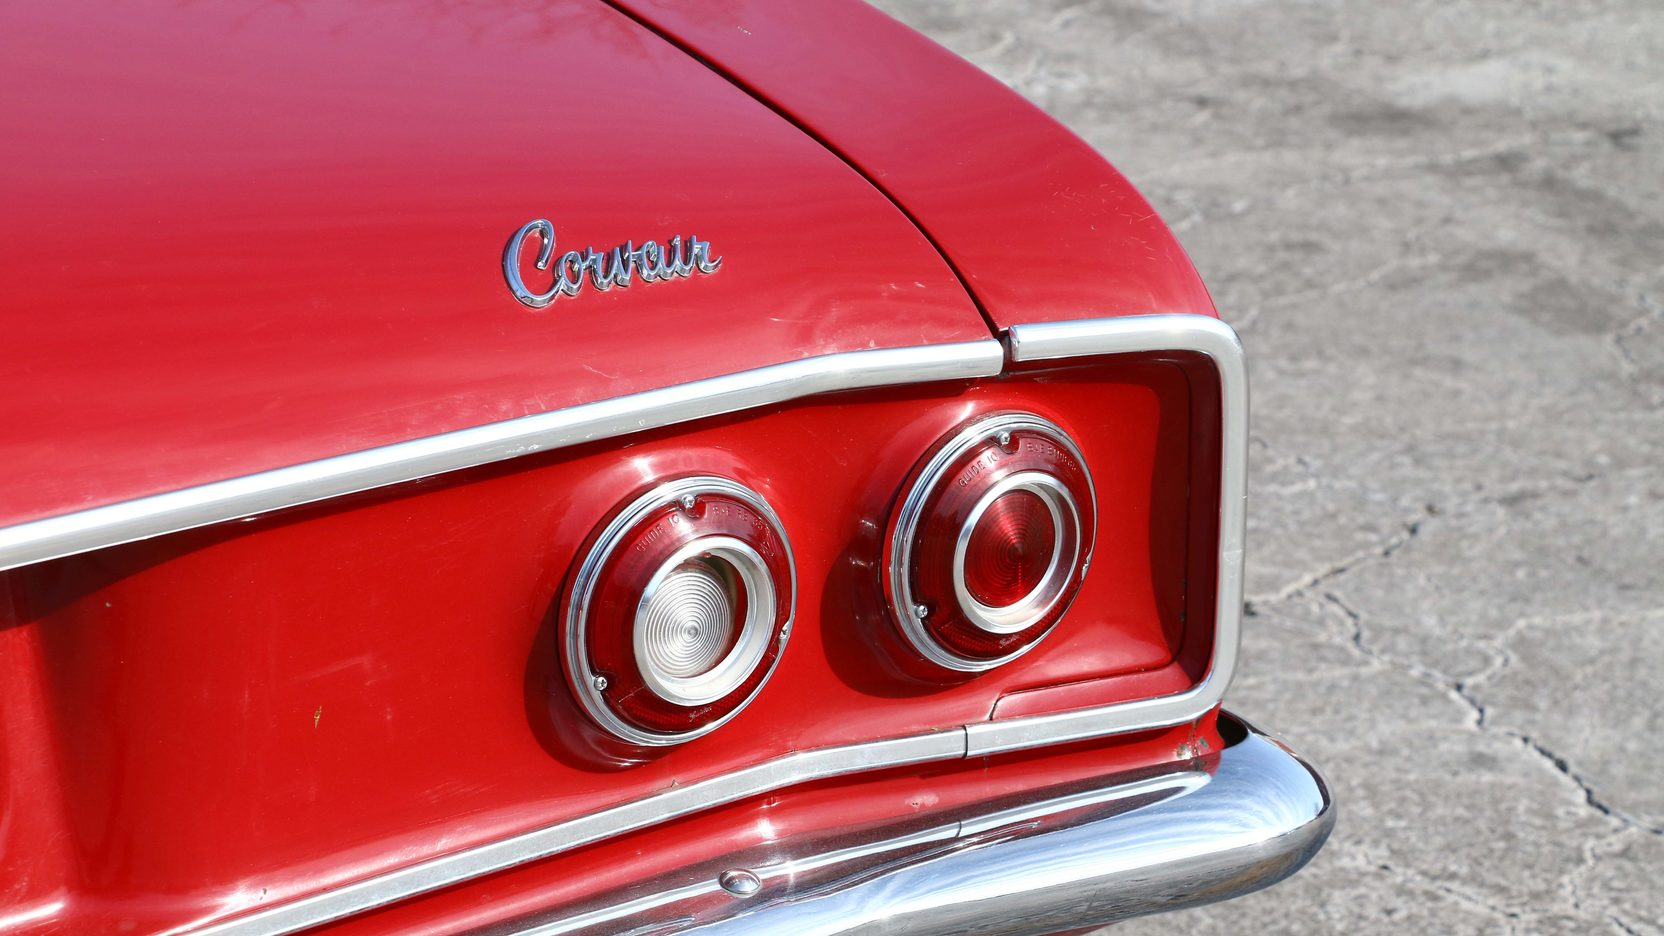 1965 Chevrolet Corvair tail light and badge detail